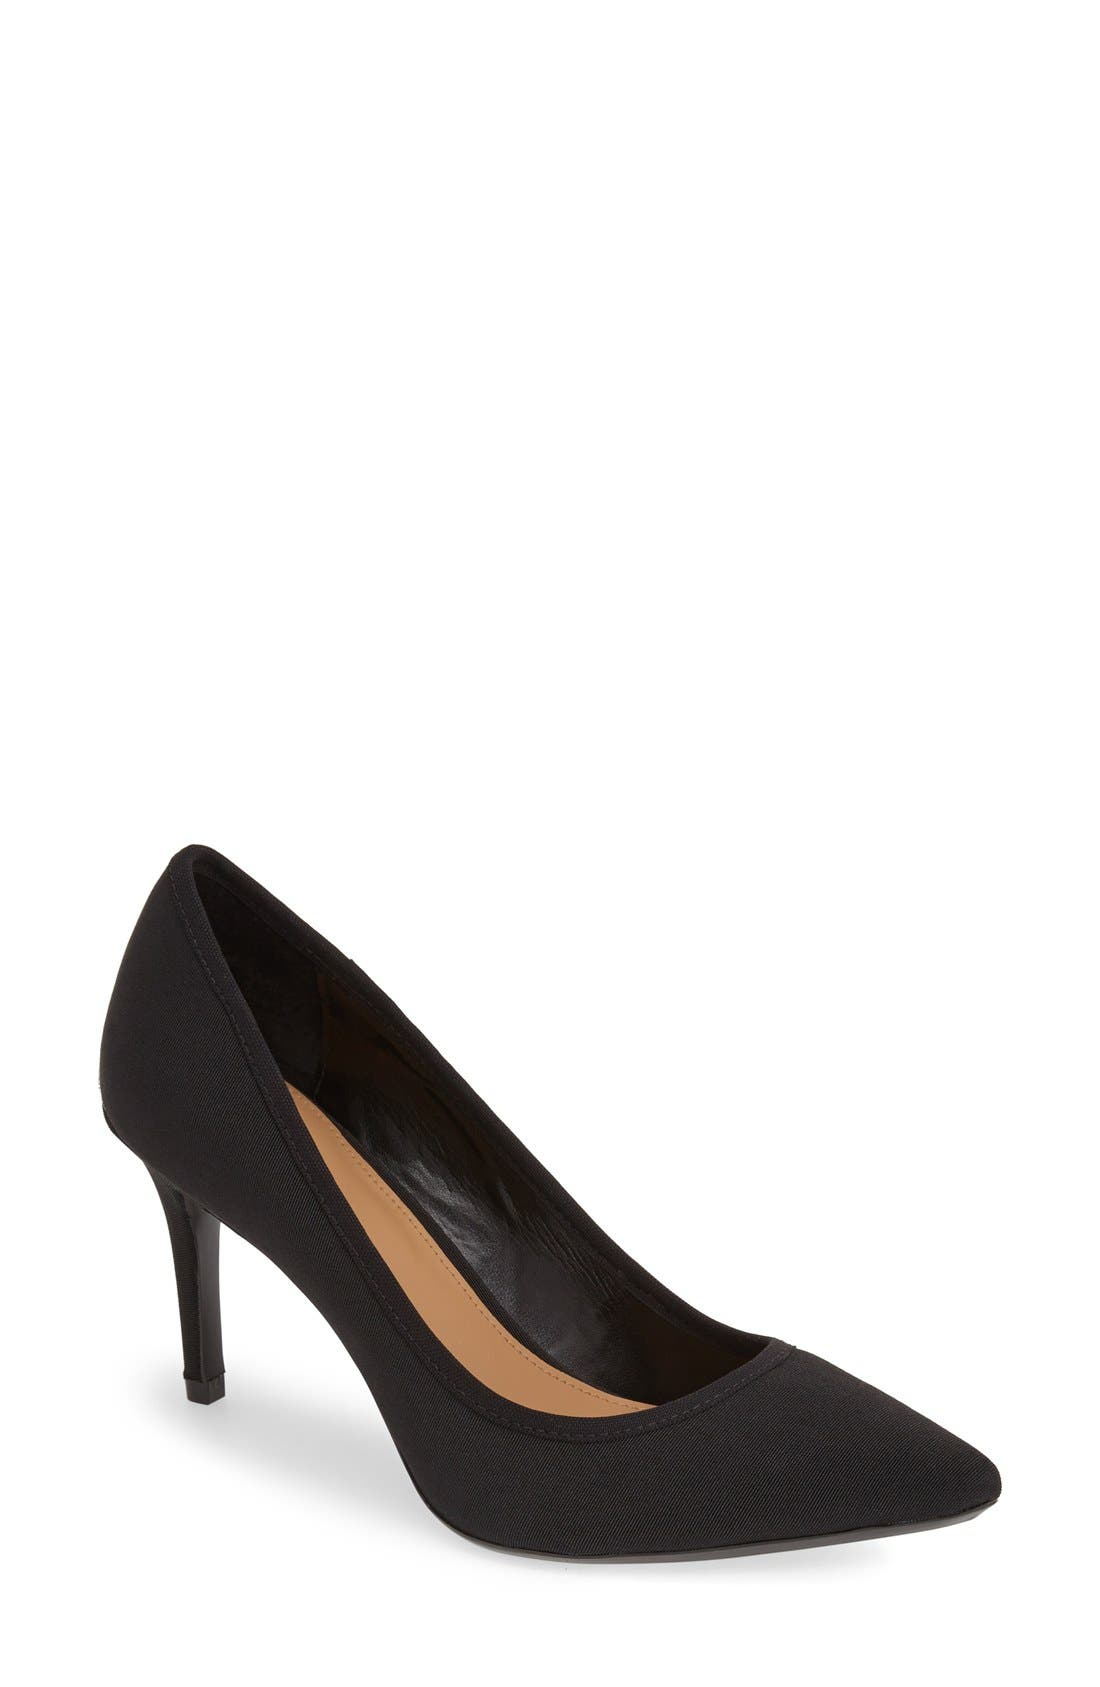 'Gayle' Pointy Toe Pump,                             Main thumbnail 1, color,                             BLACK STRETCH